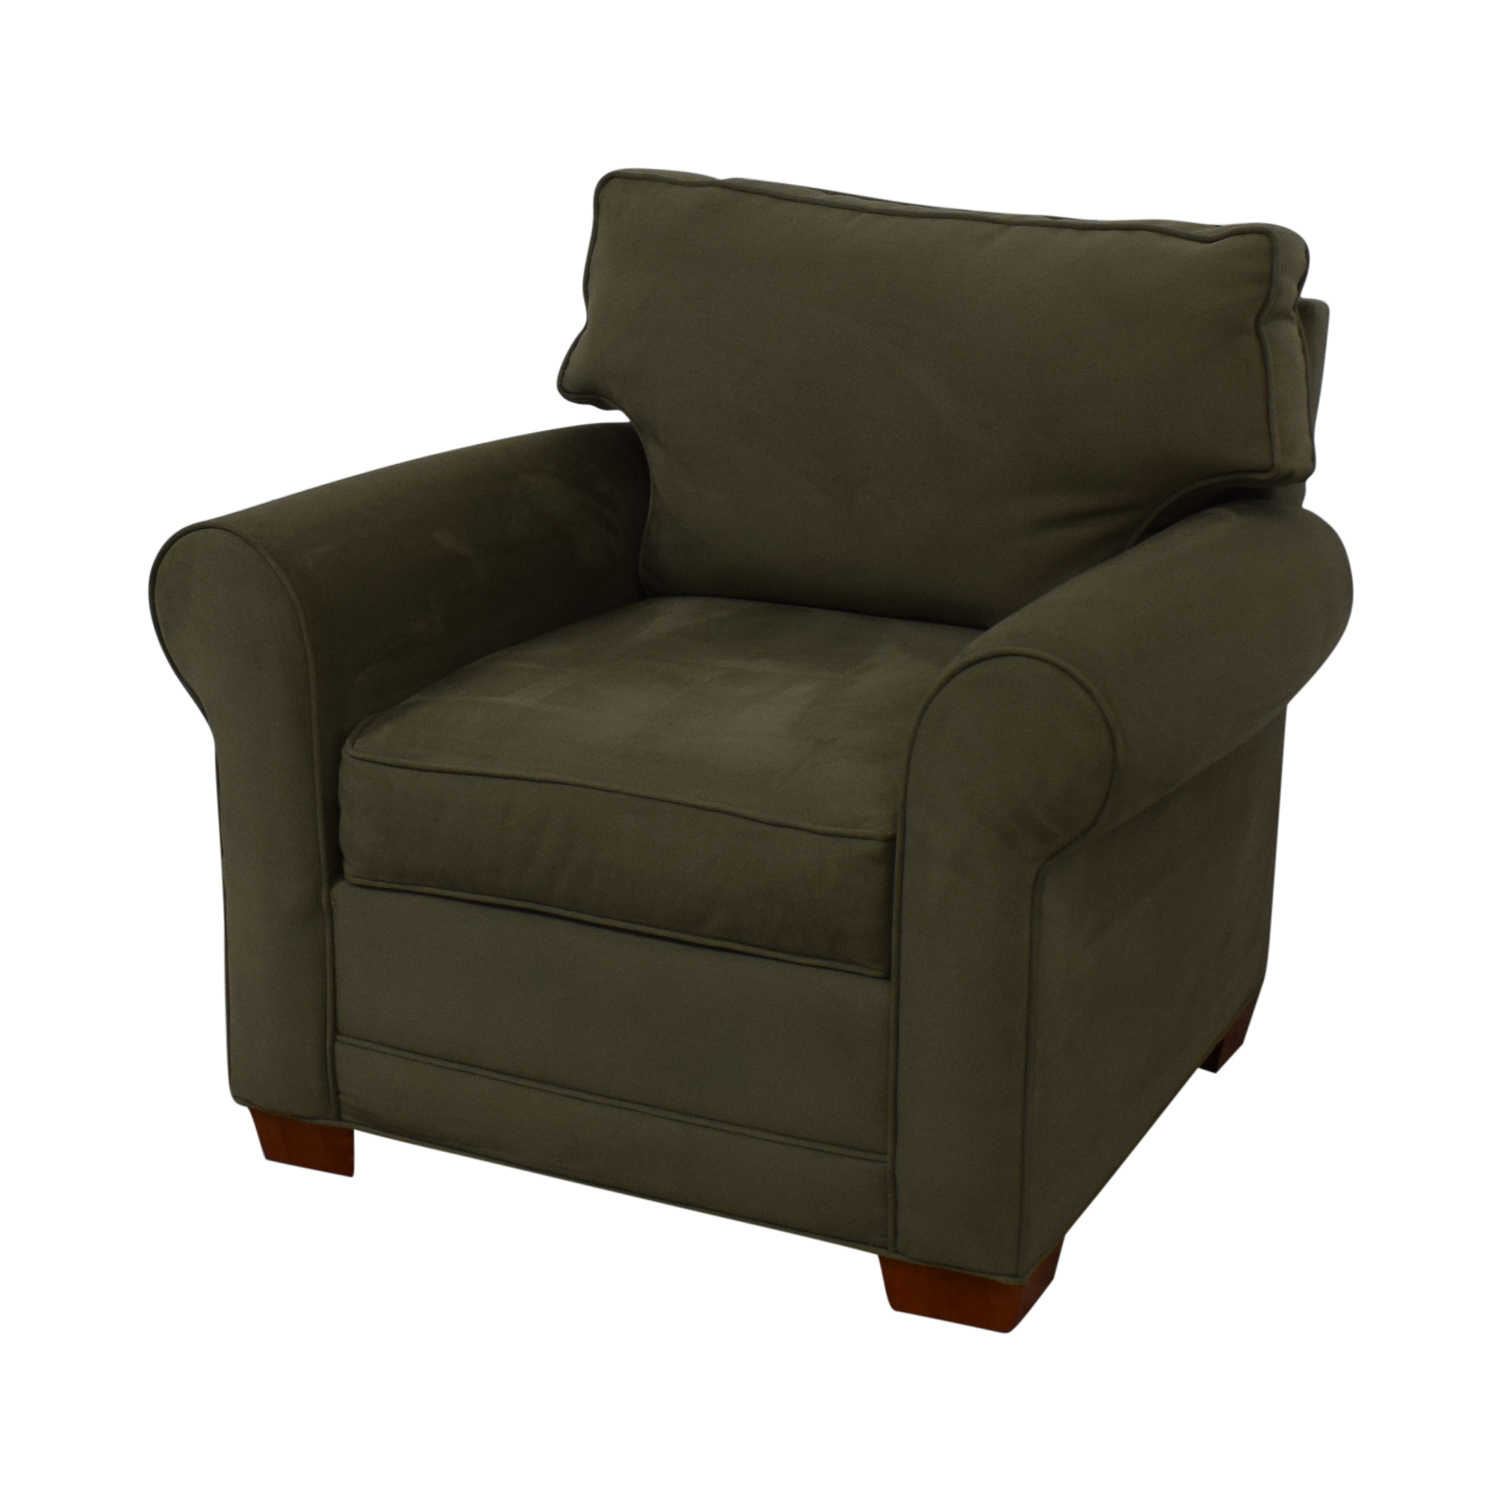 Raymour & Flanigan Raymour & Flanigan Green Accent Chair on sale